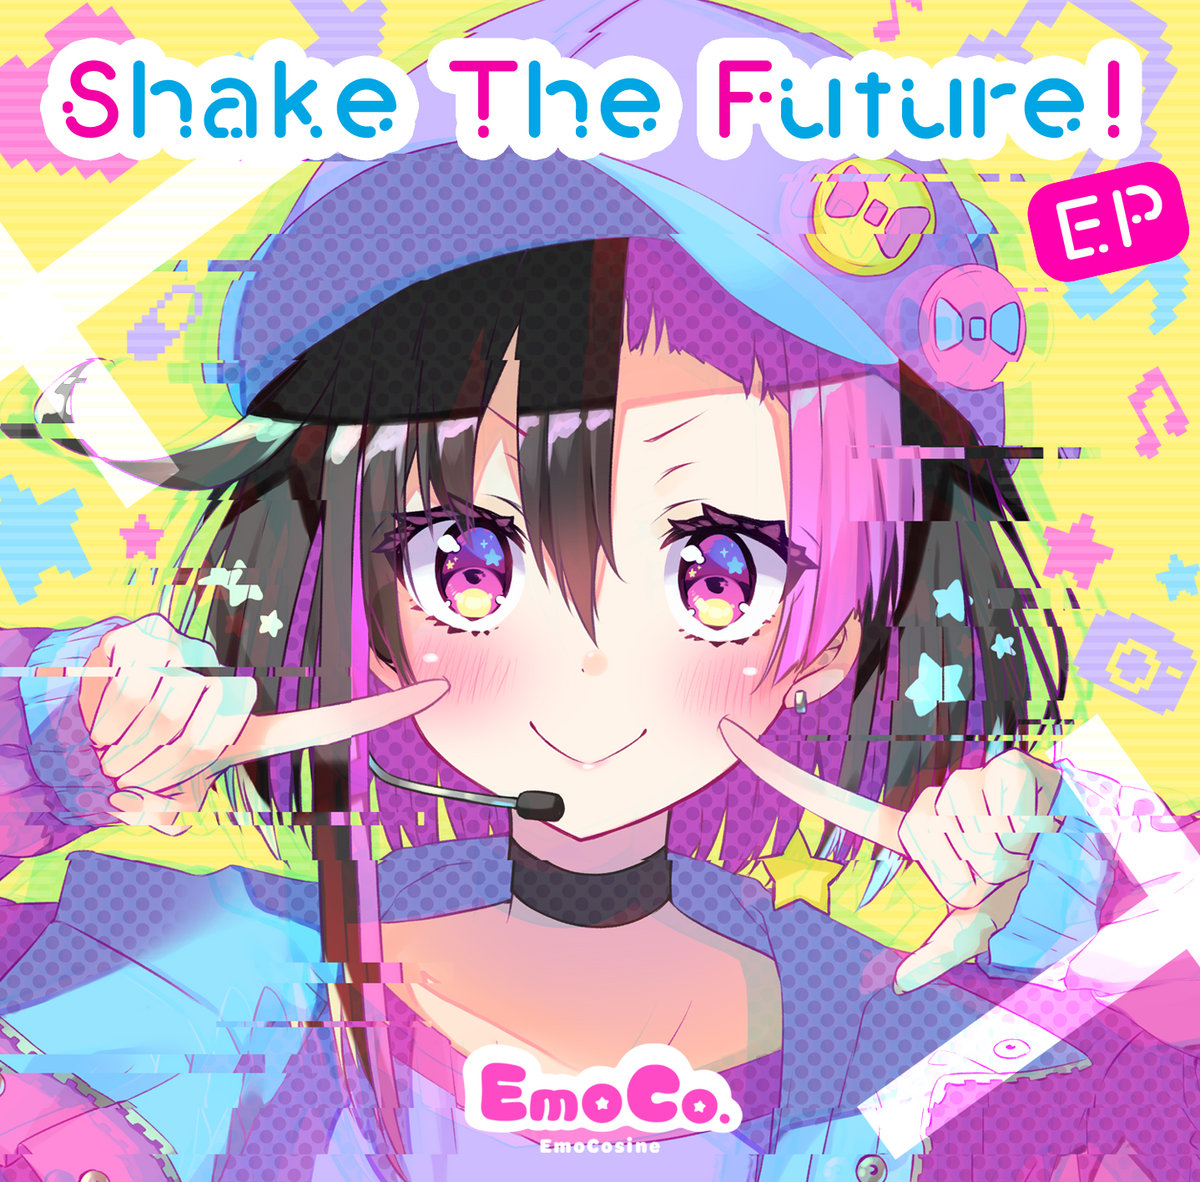 The Music Ep Shake The Future Ep Attack The Music